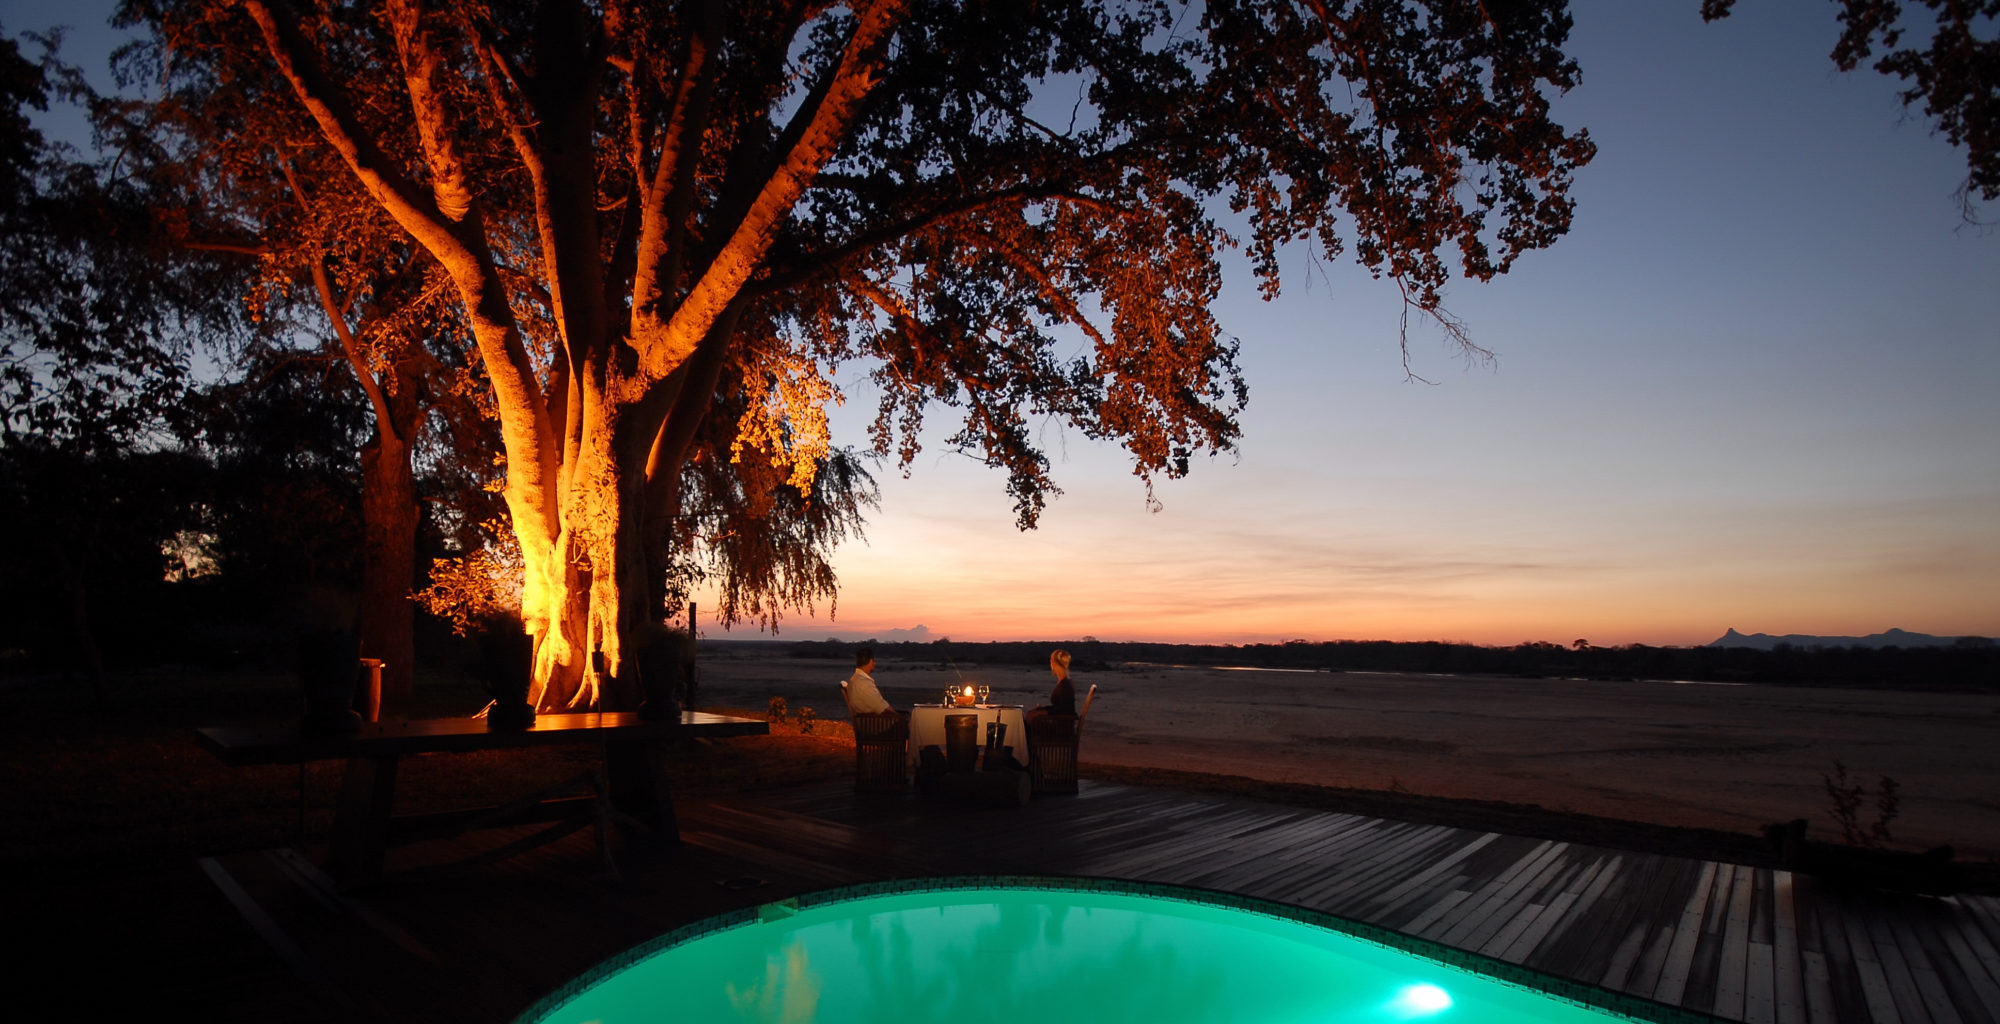 Lugenda Wilderness Mozambique Sunset Pool